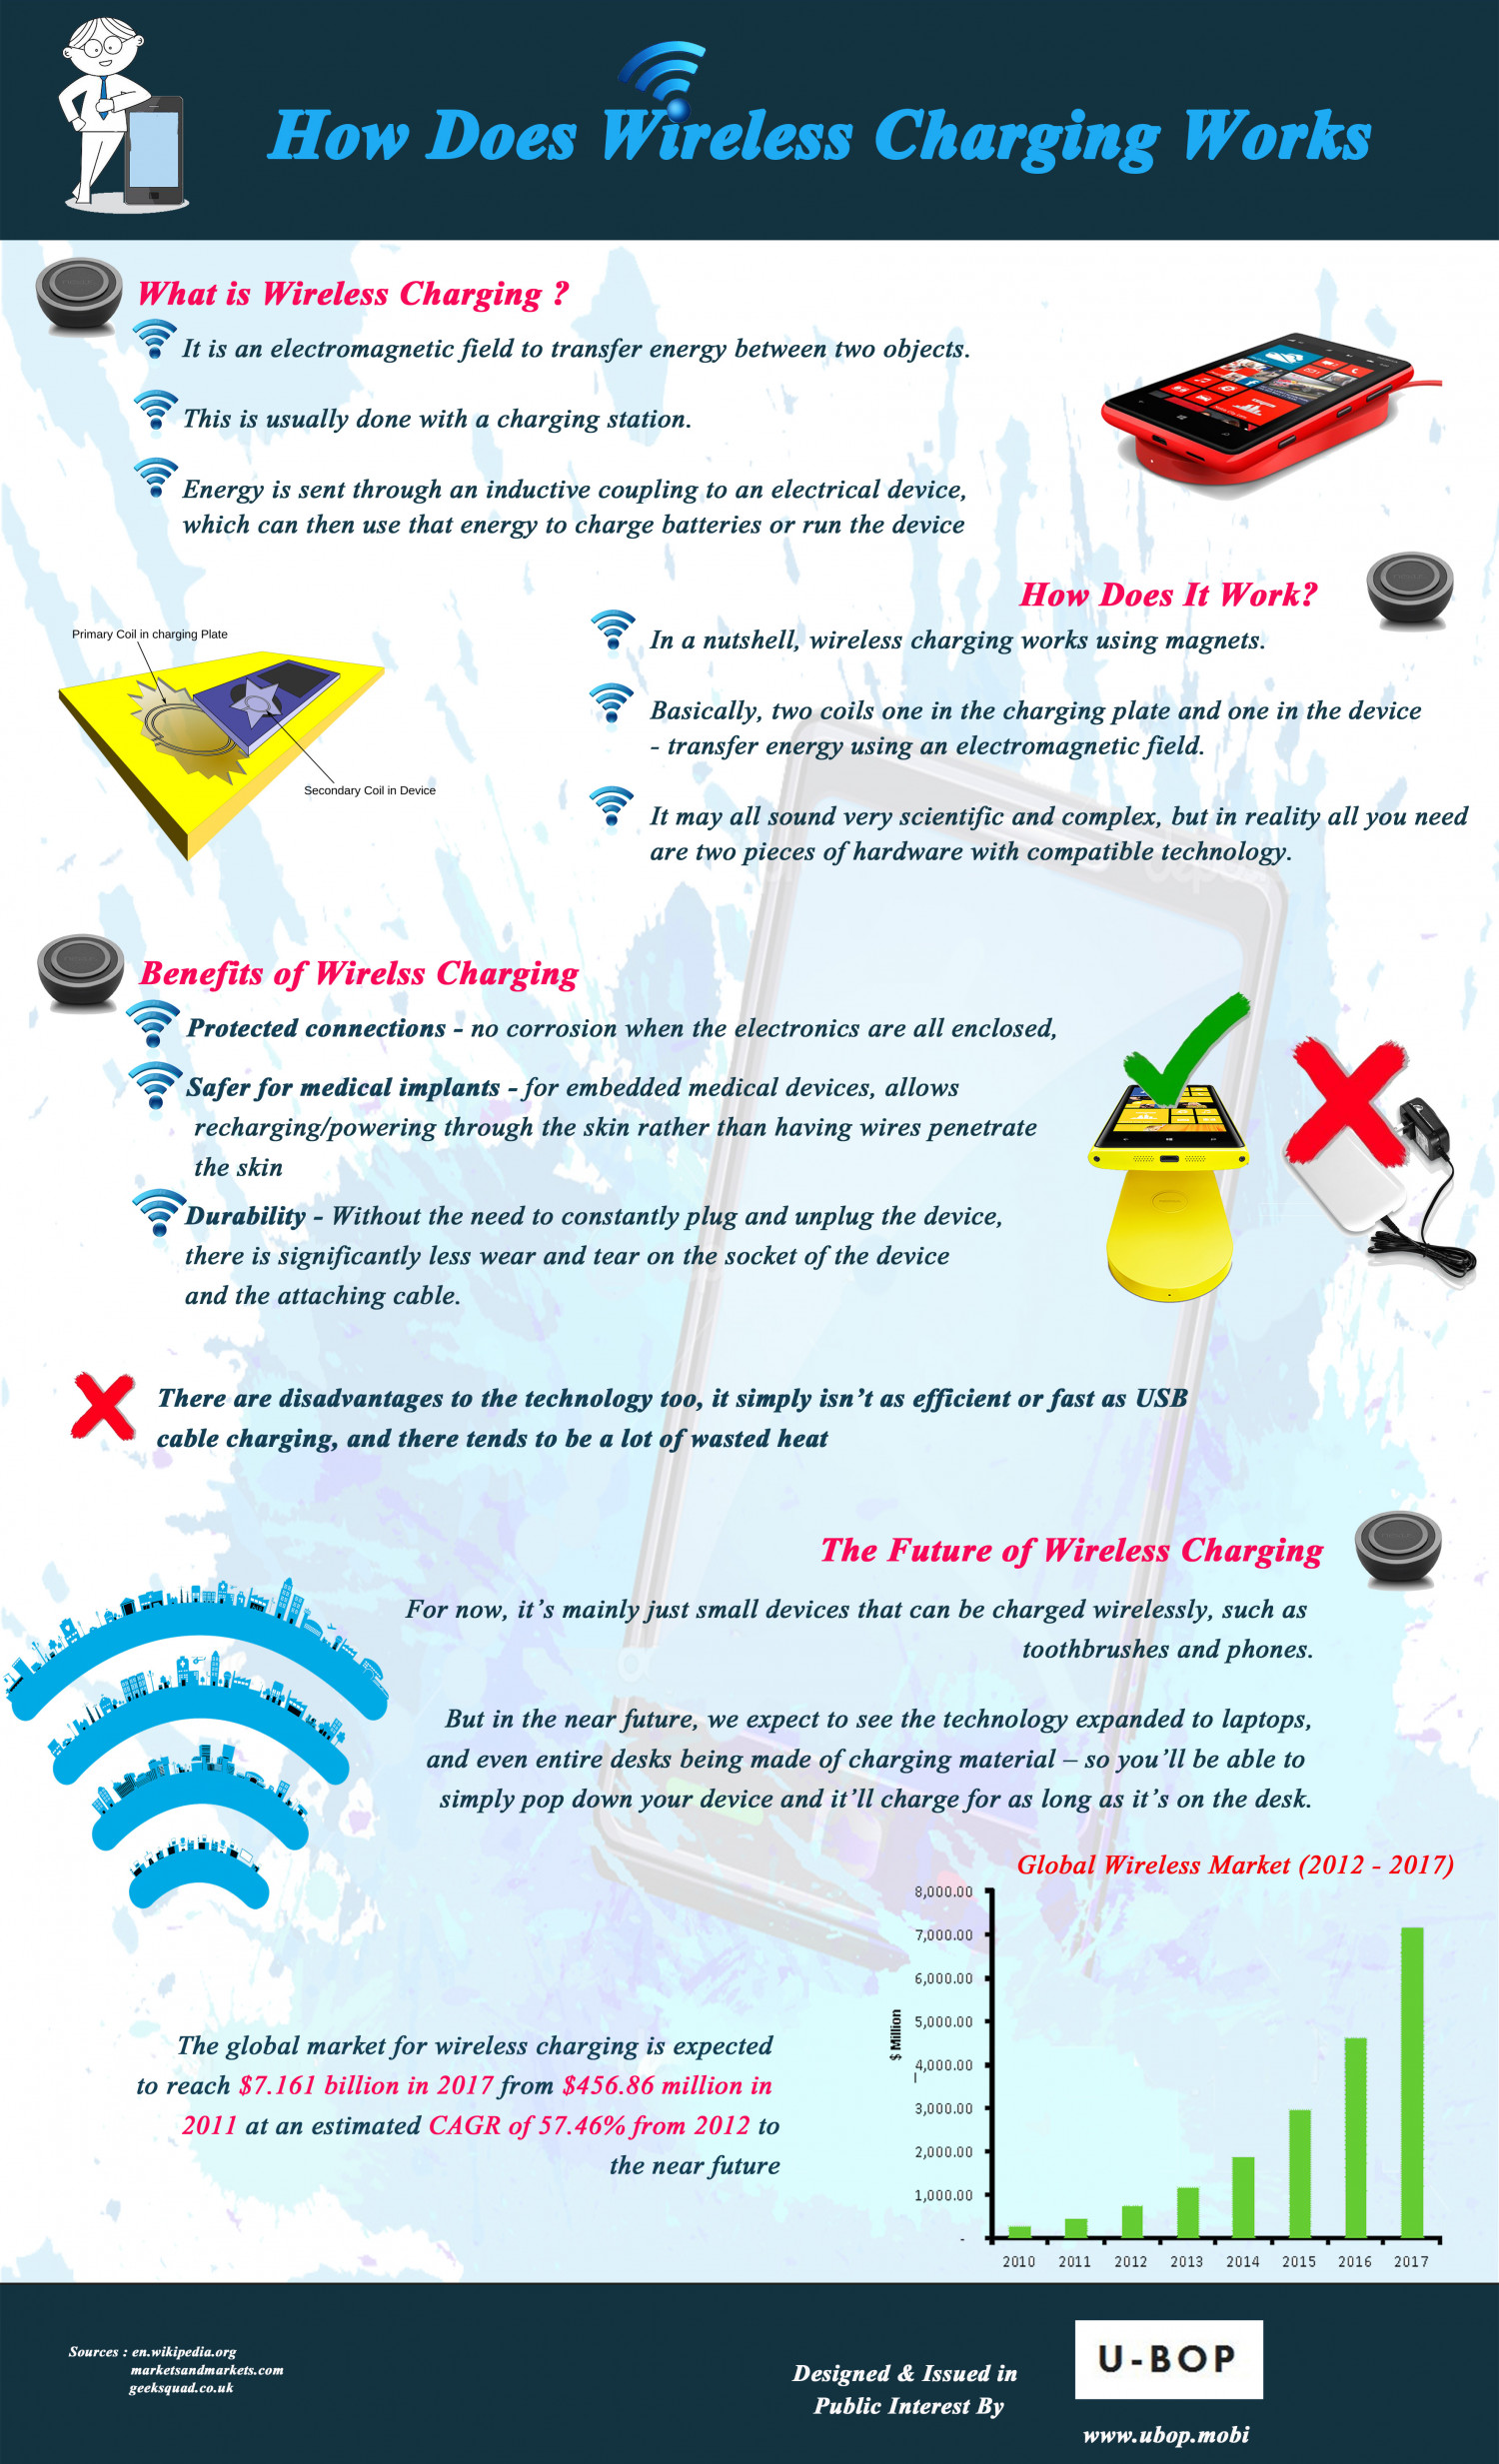 How Does Wireless Charging Works Infographic